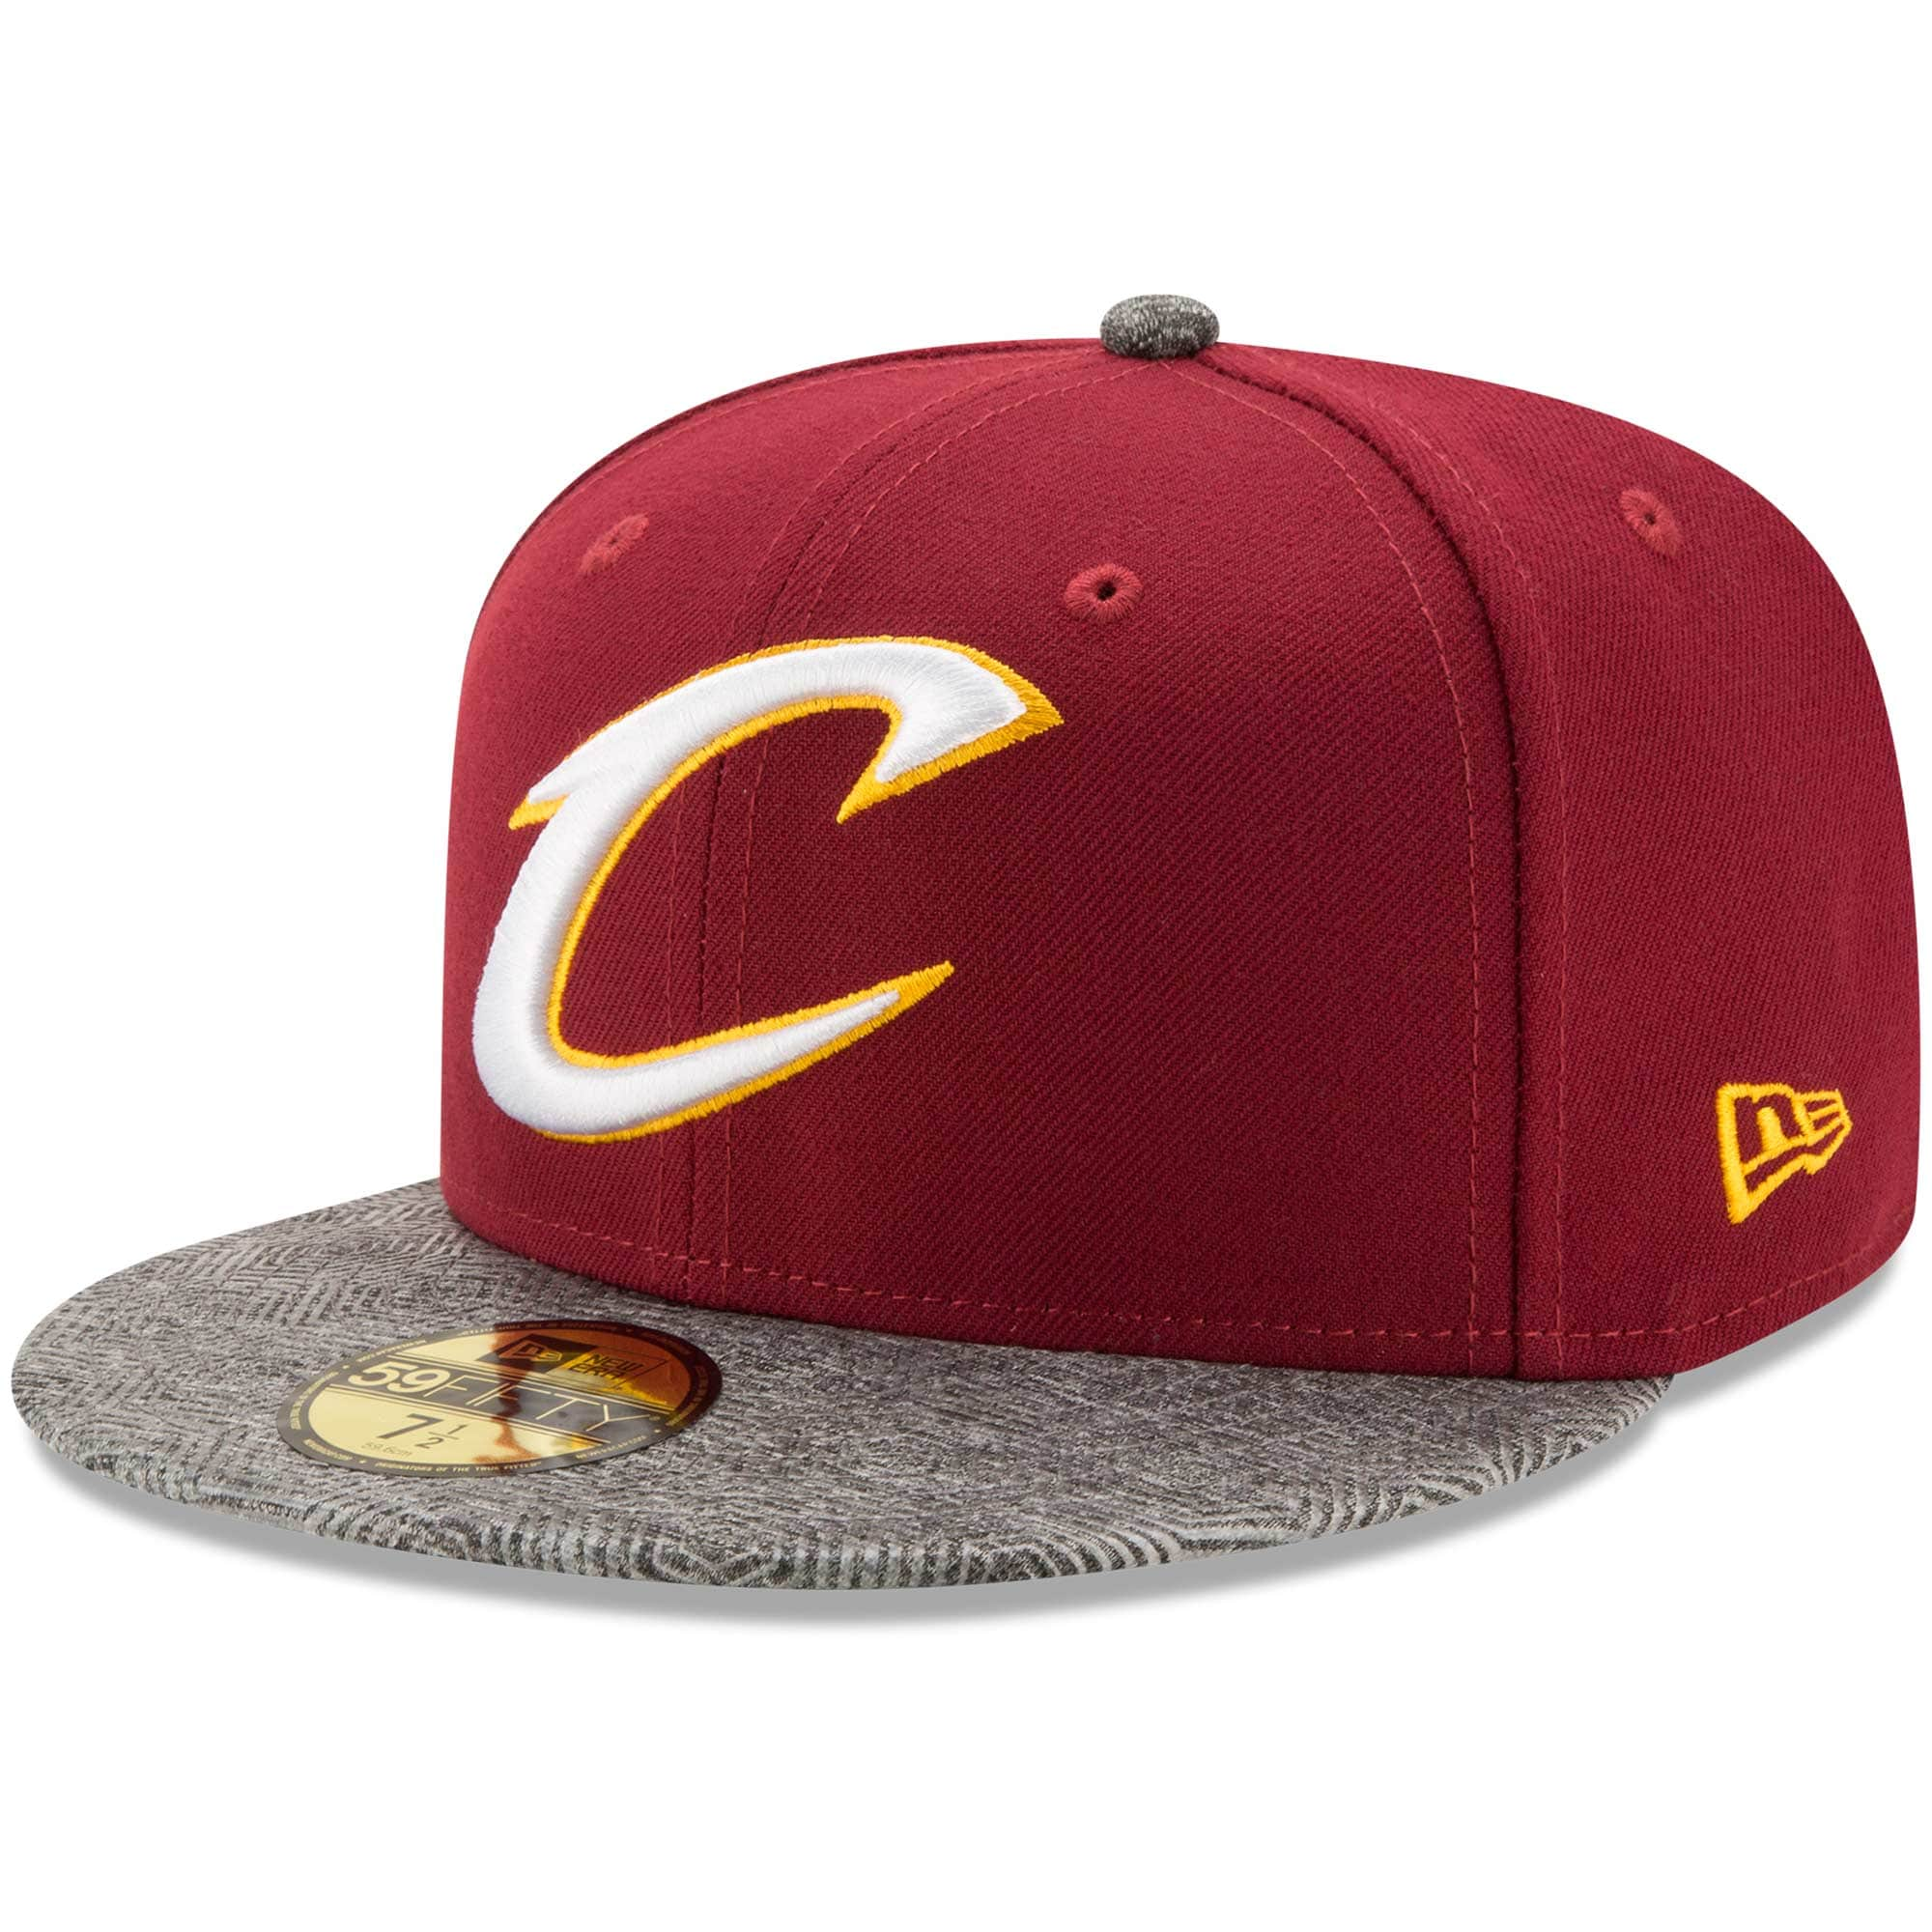 Cleveland Cavaliers New Era Gripping Vize 59FIFTY Fitted Hat - Wine